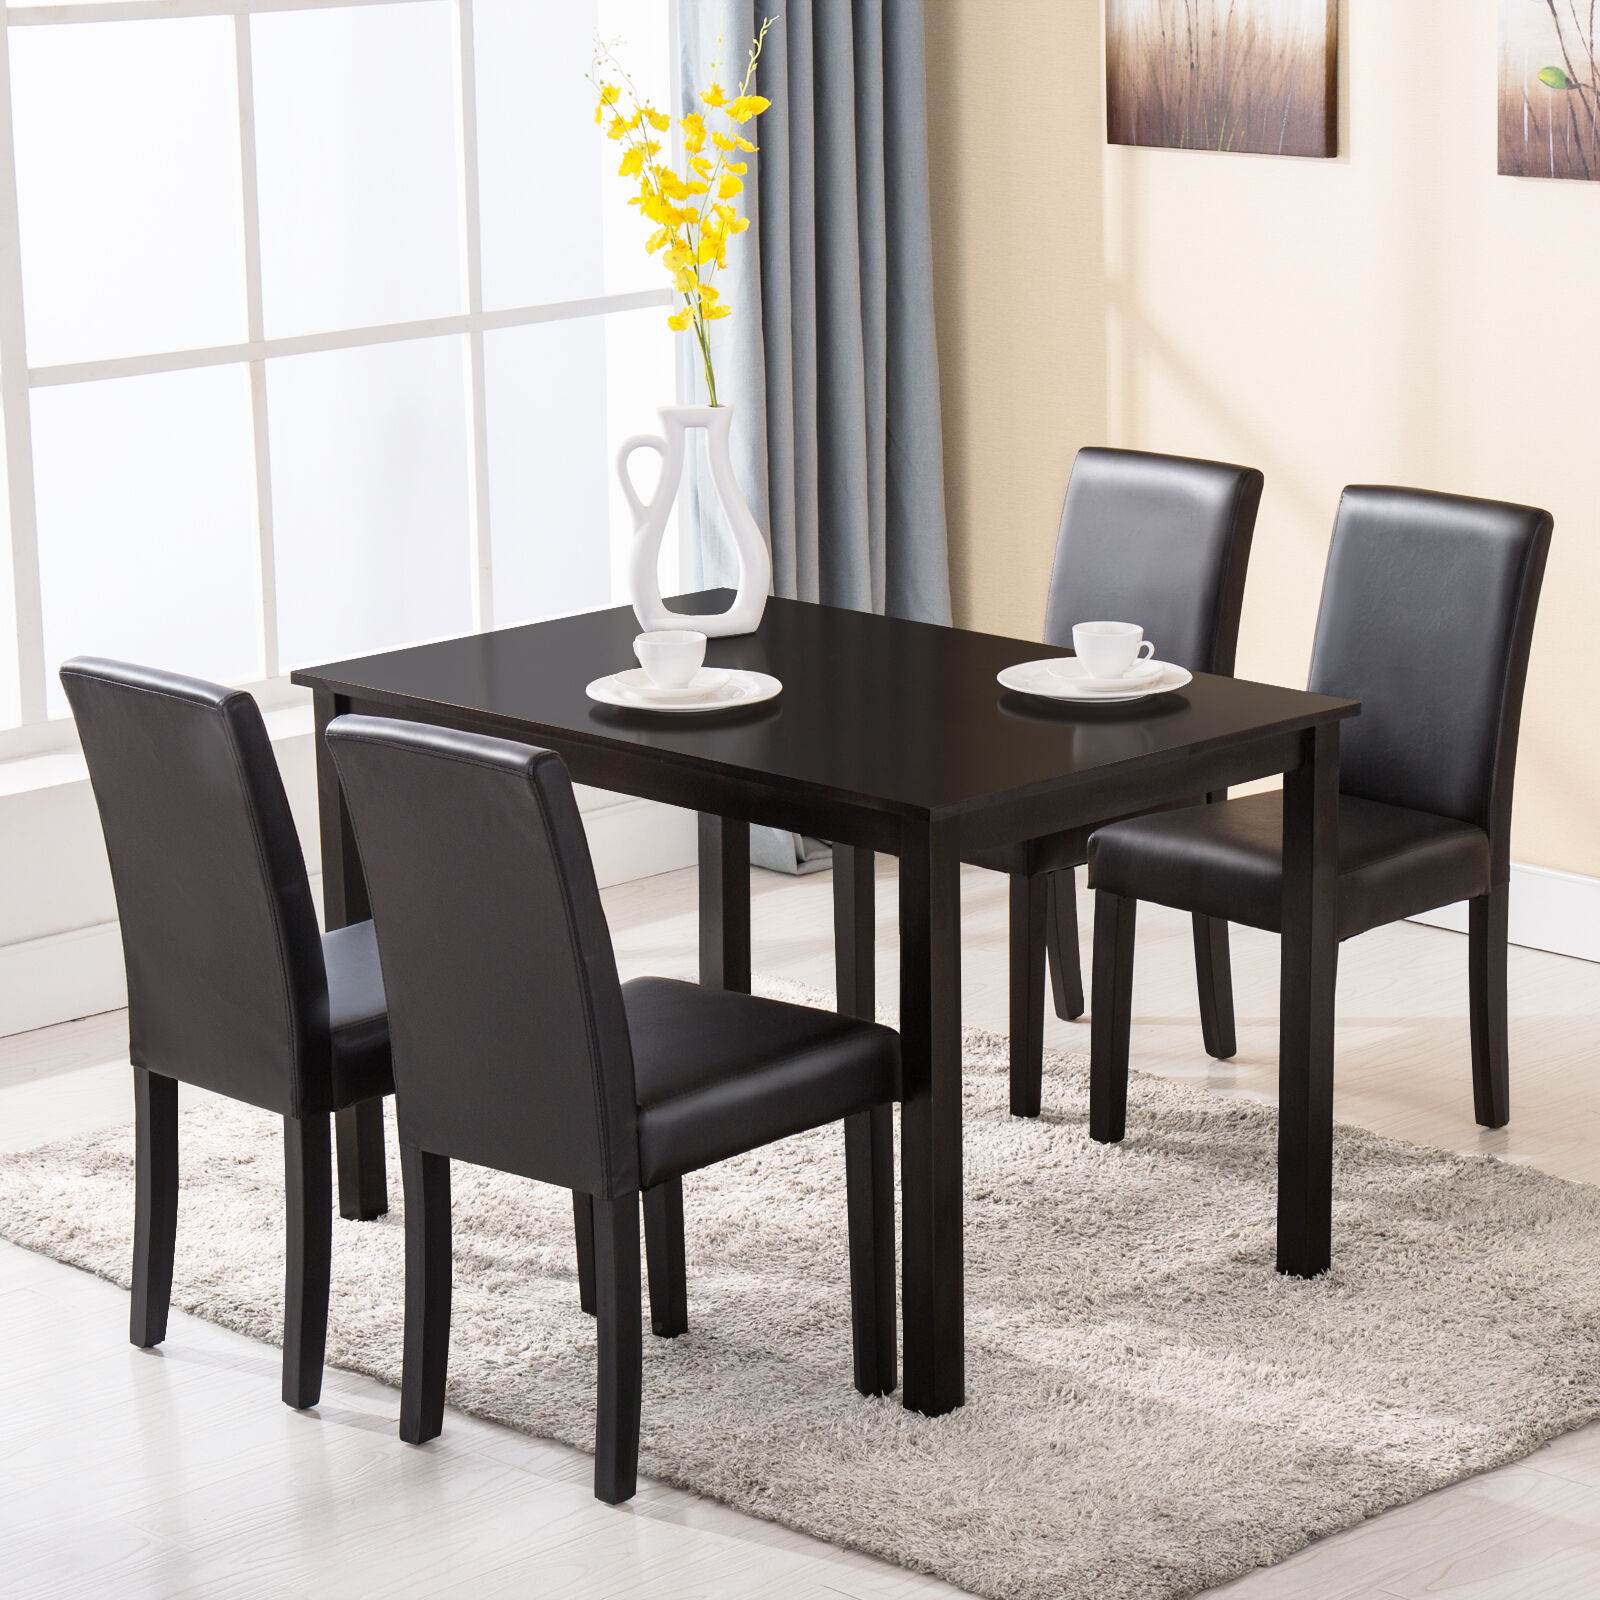 Oak Kitchen Table Chairs Best House